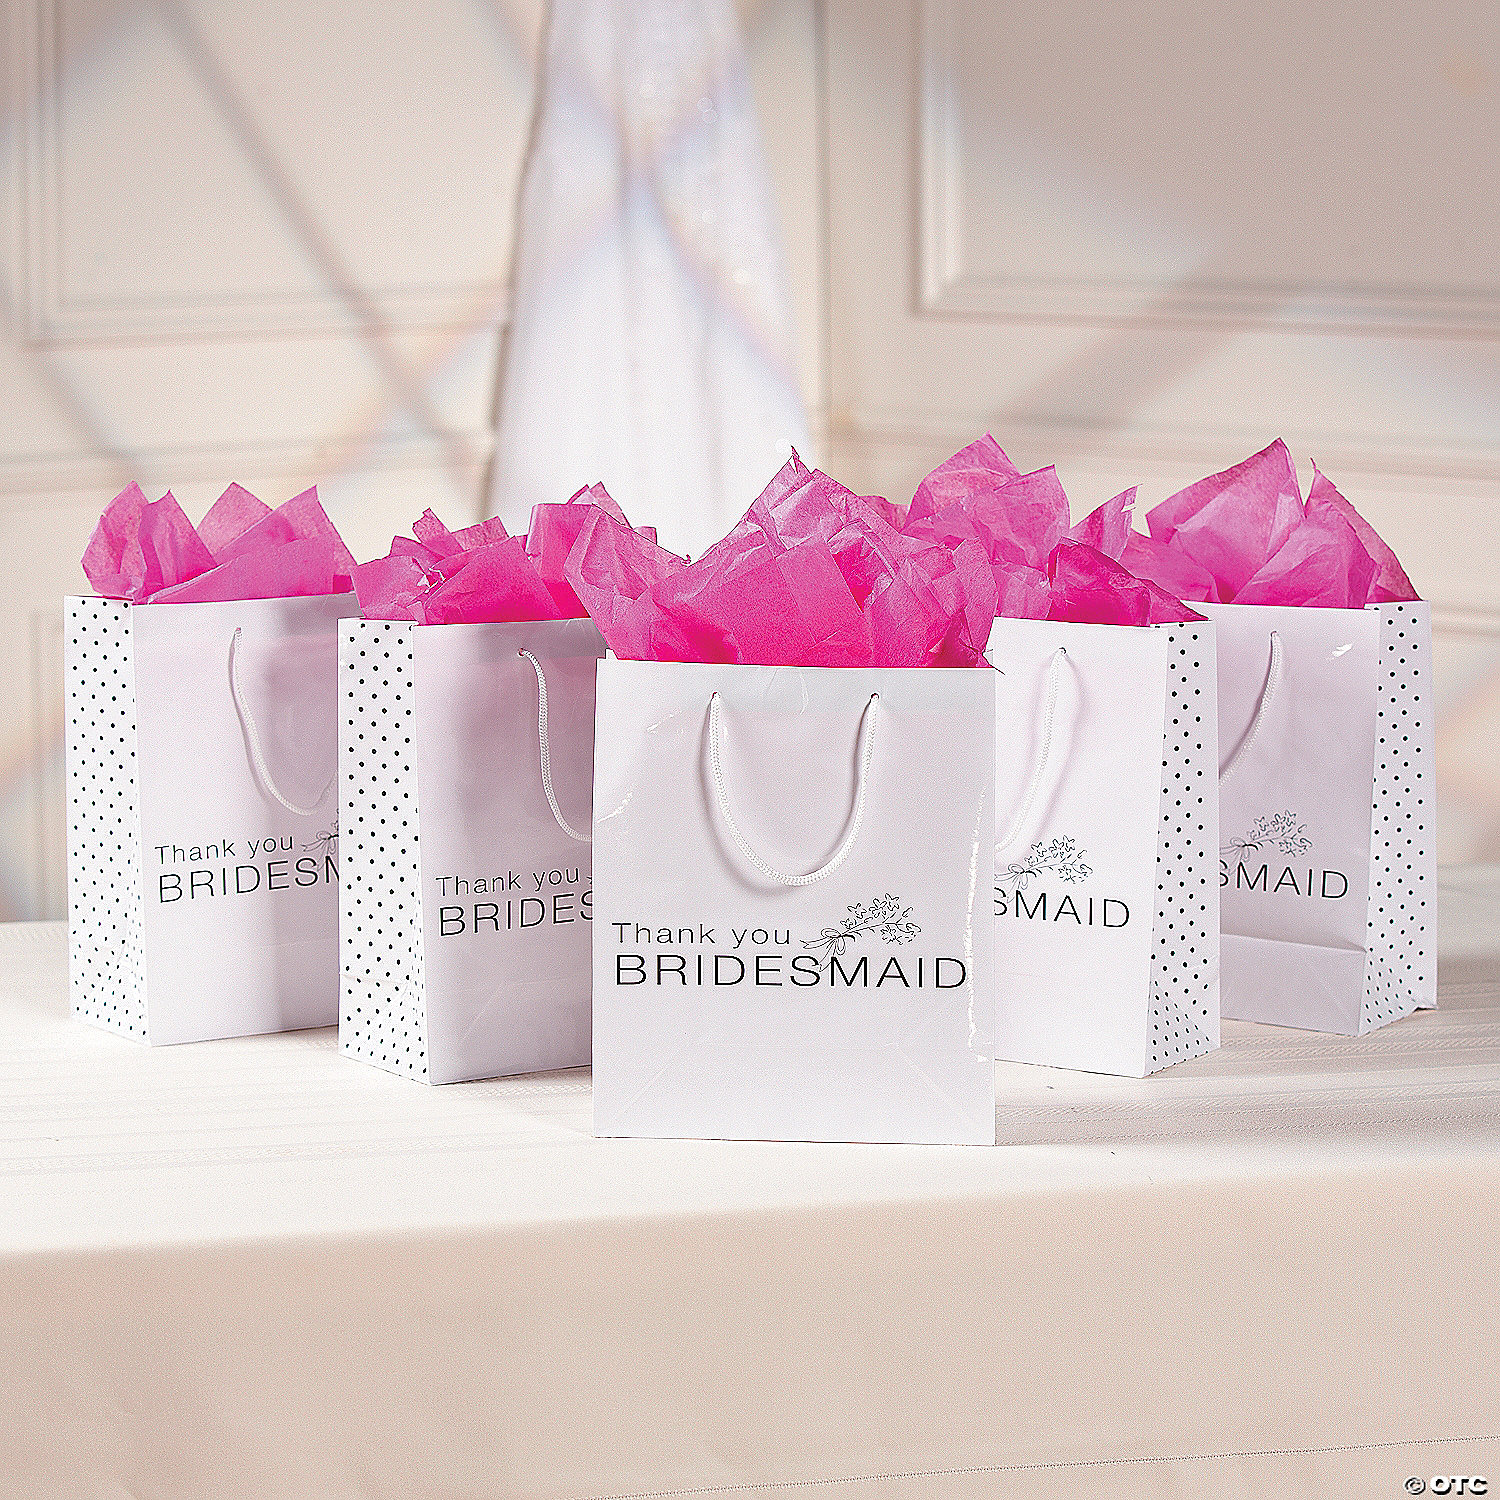 Bridesmaid gift bags discontinued bridesmaid gift bags negle Image collections